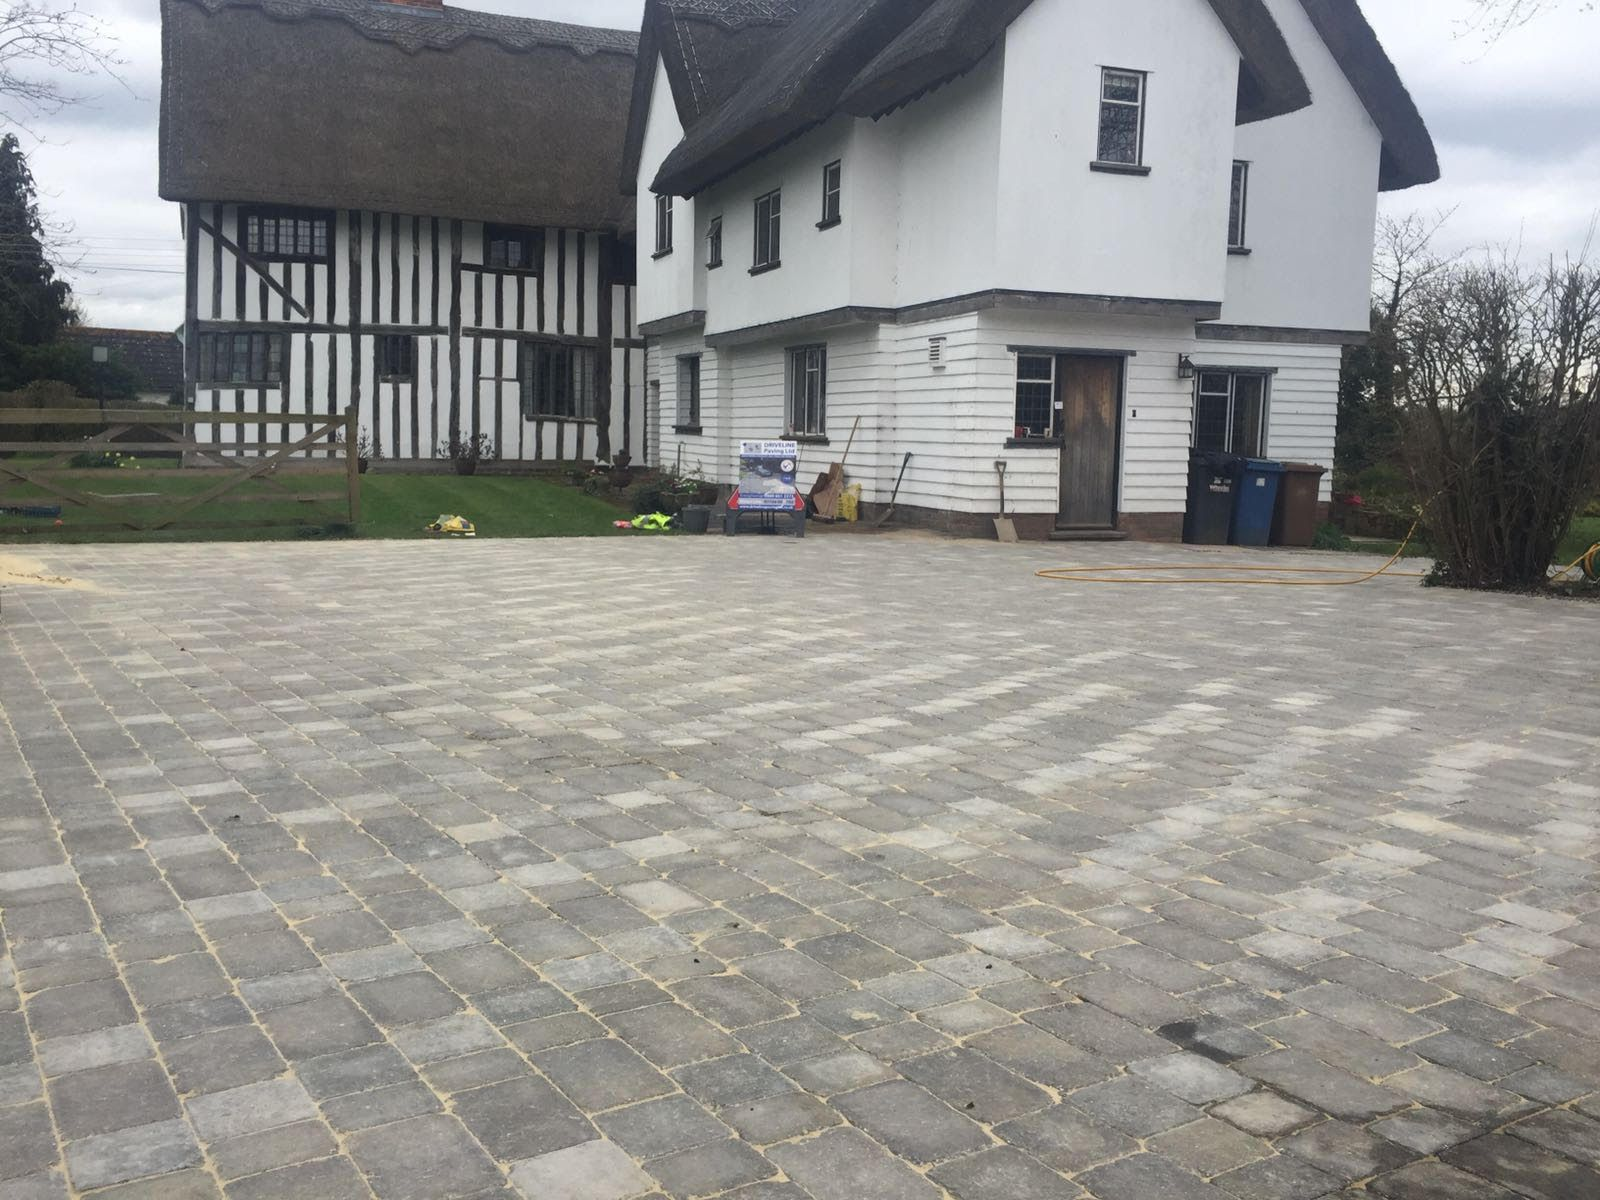 Block Paving contractors in Southend offer an impressive range